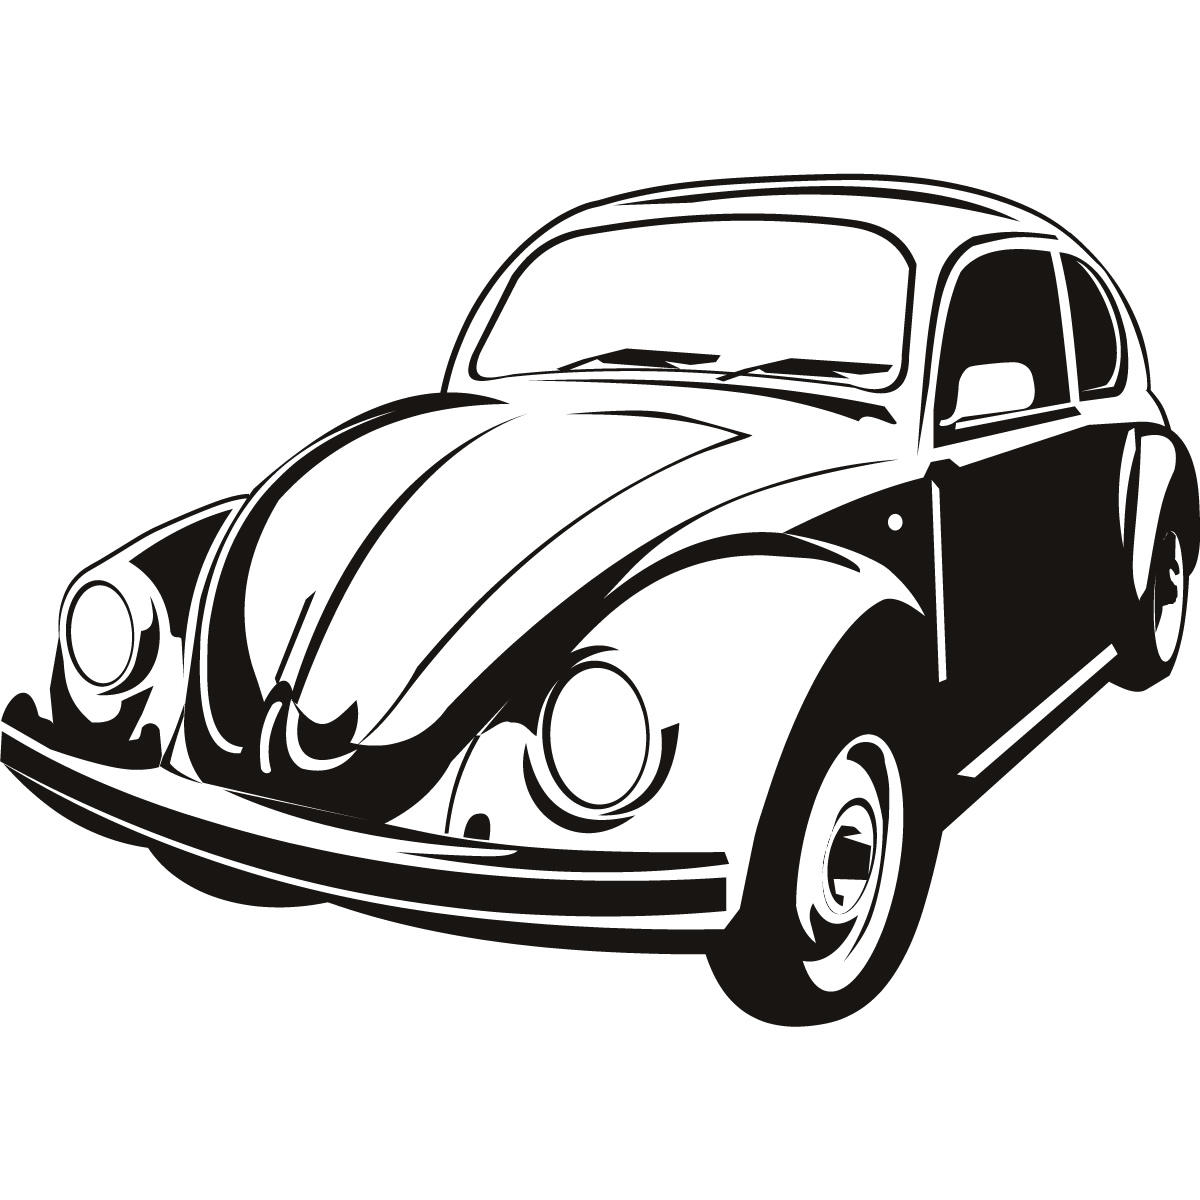 29485 likewise Digital Collage Of Black And White  ic Design Doodle Sketches 211443 in addition Stock Illustration Airplane Cartoon Outline Vector furthermore Stock Illustration Driving School Icons Image Vector Illustration Can Be Scaled To Any Size Loss Resolution Image44308514 additionally Vw Car Cliparts. on car stock illustration